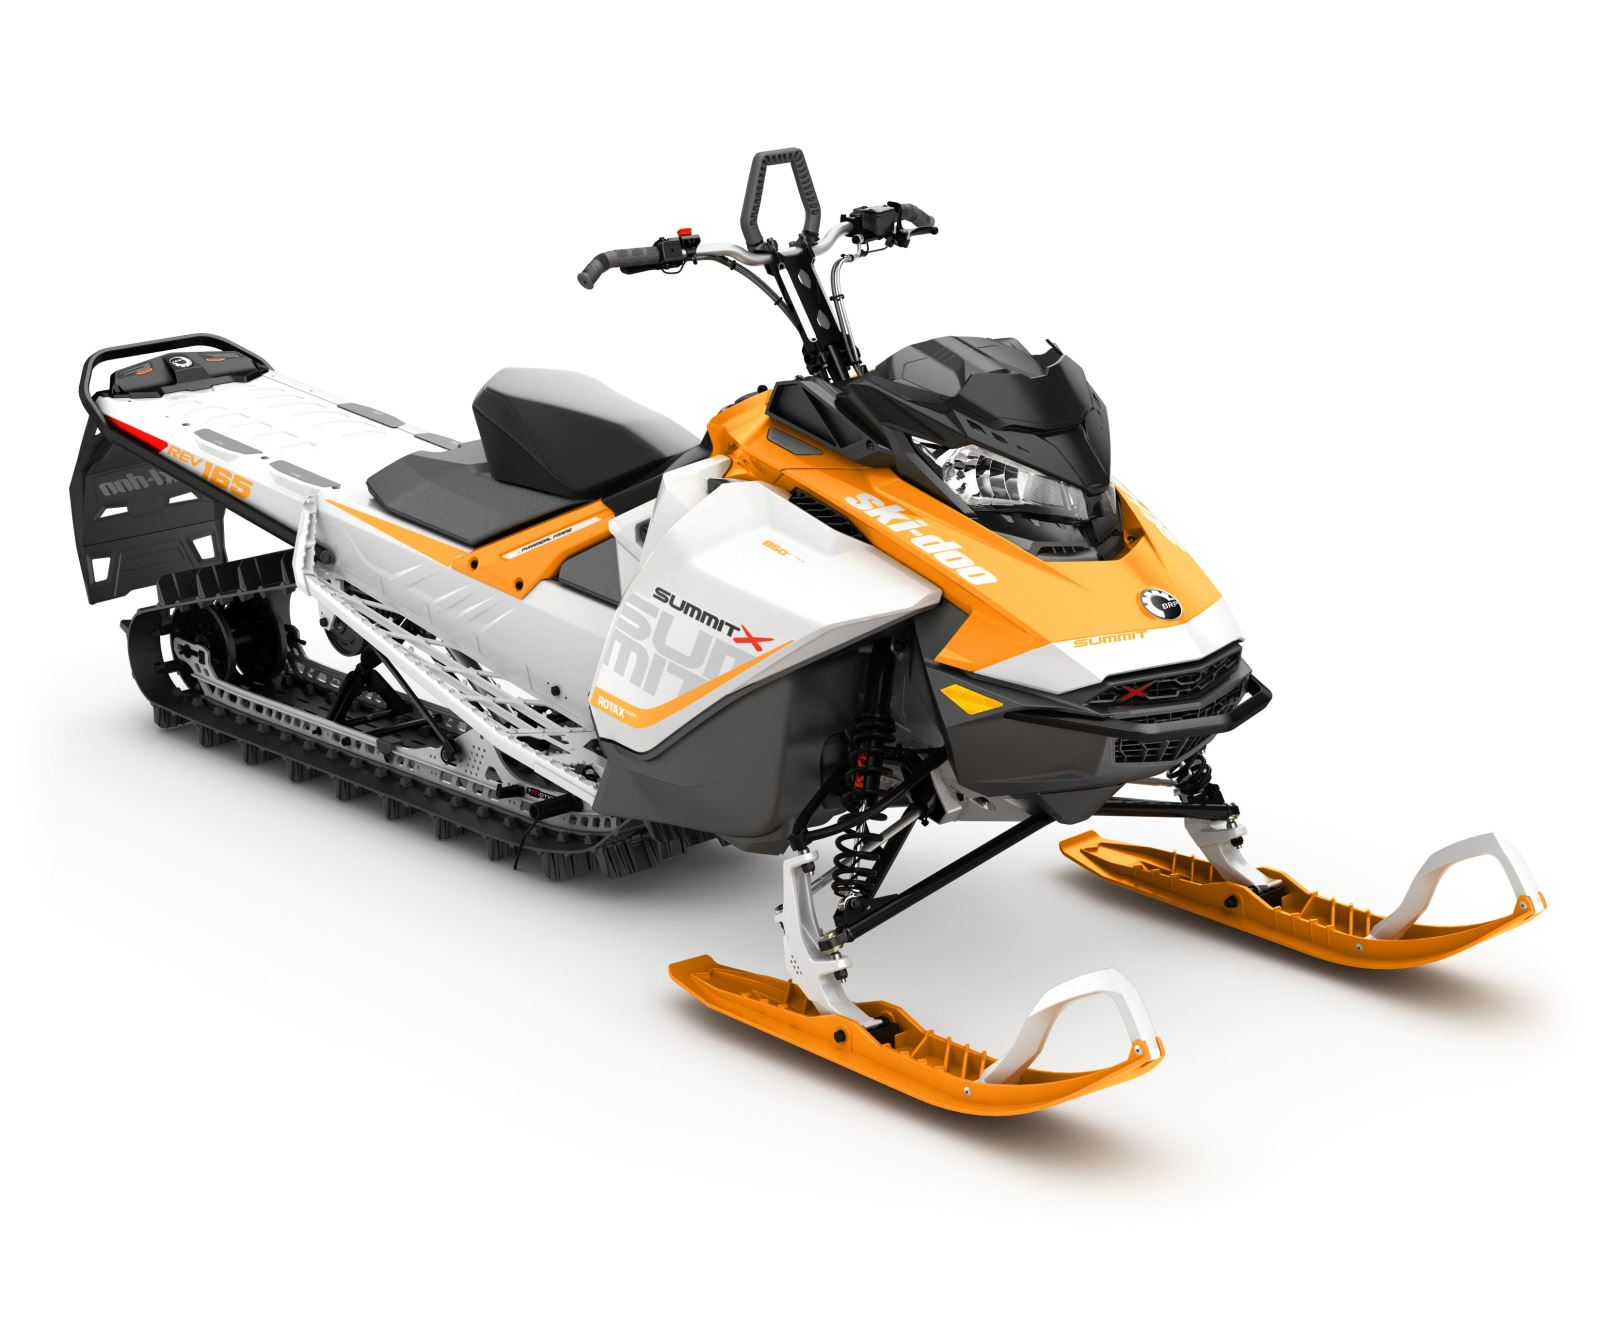 ski doo 2017 everything you need to know about the gen4 850 e tec summits snowest magazine. Black Bedroom Furniture Sets. Home Design Ideas